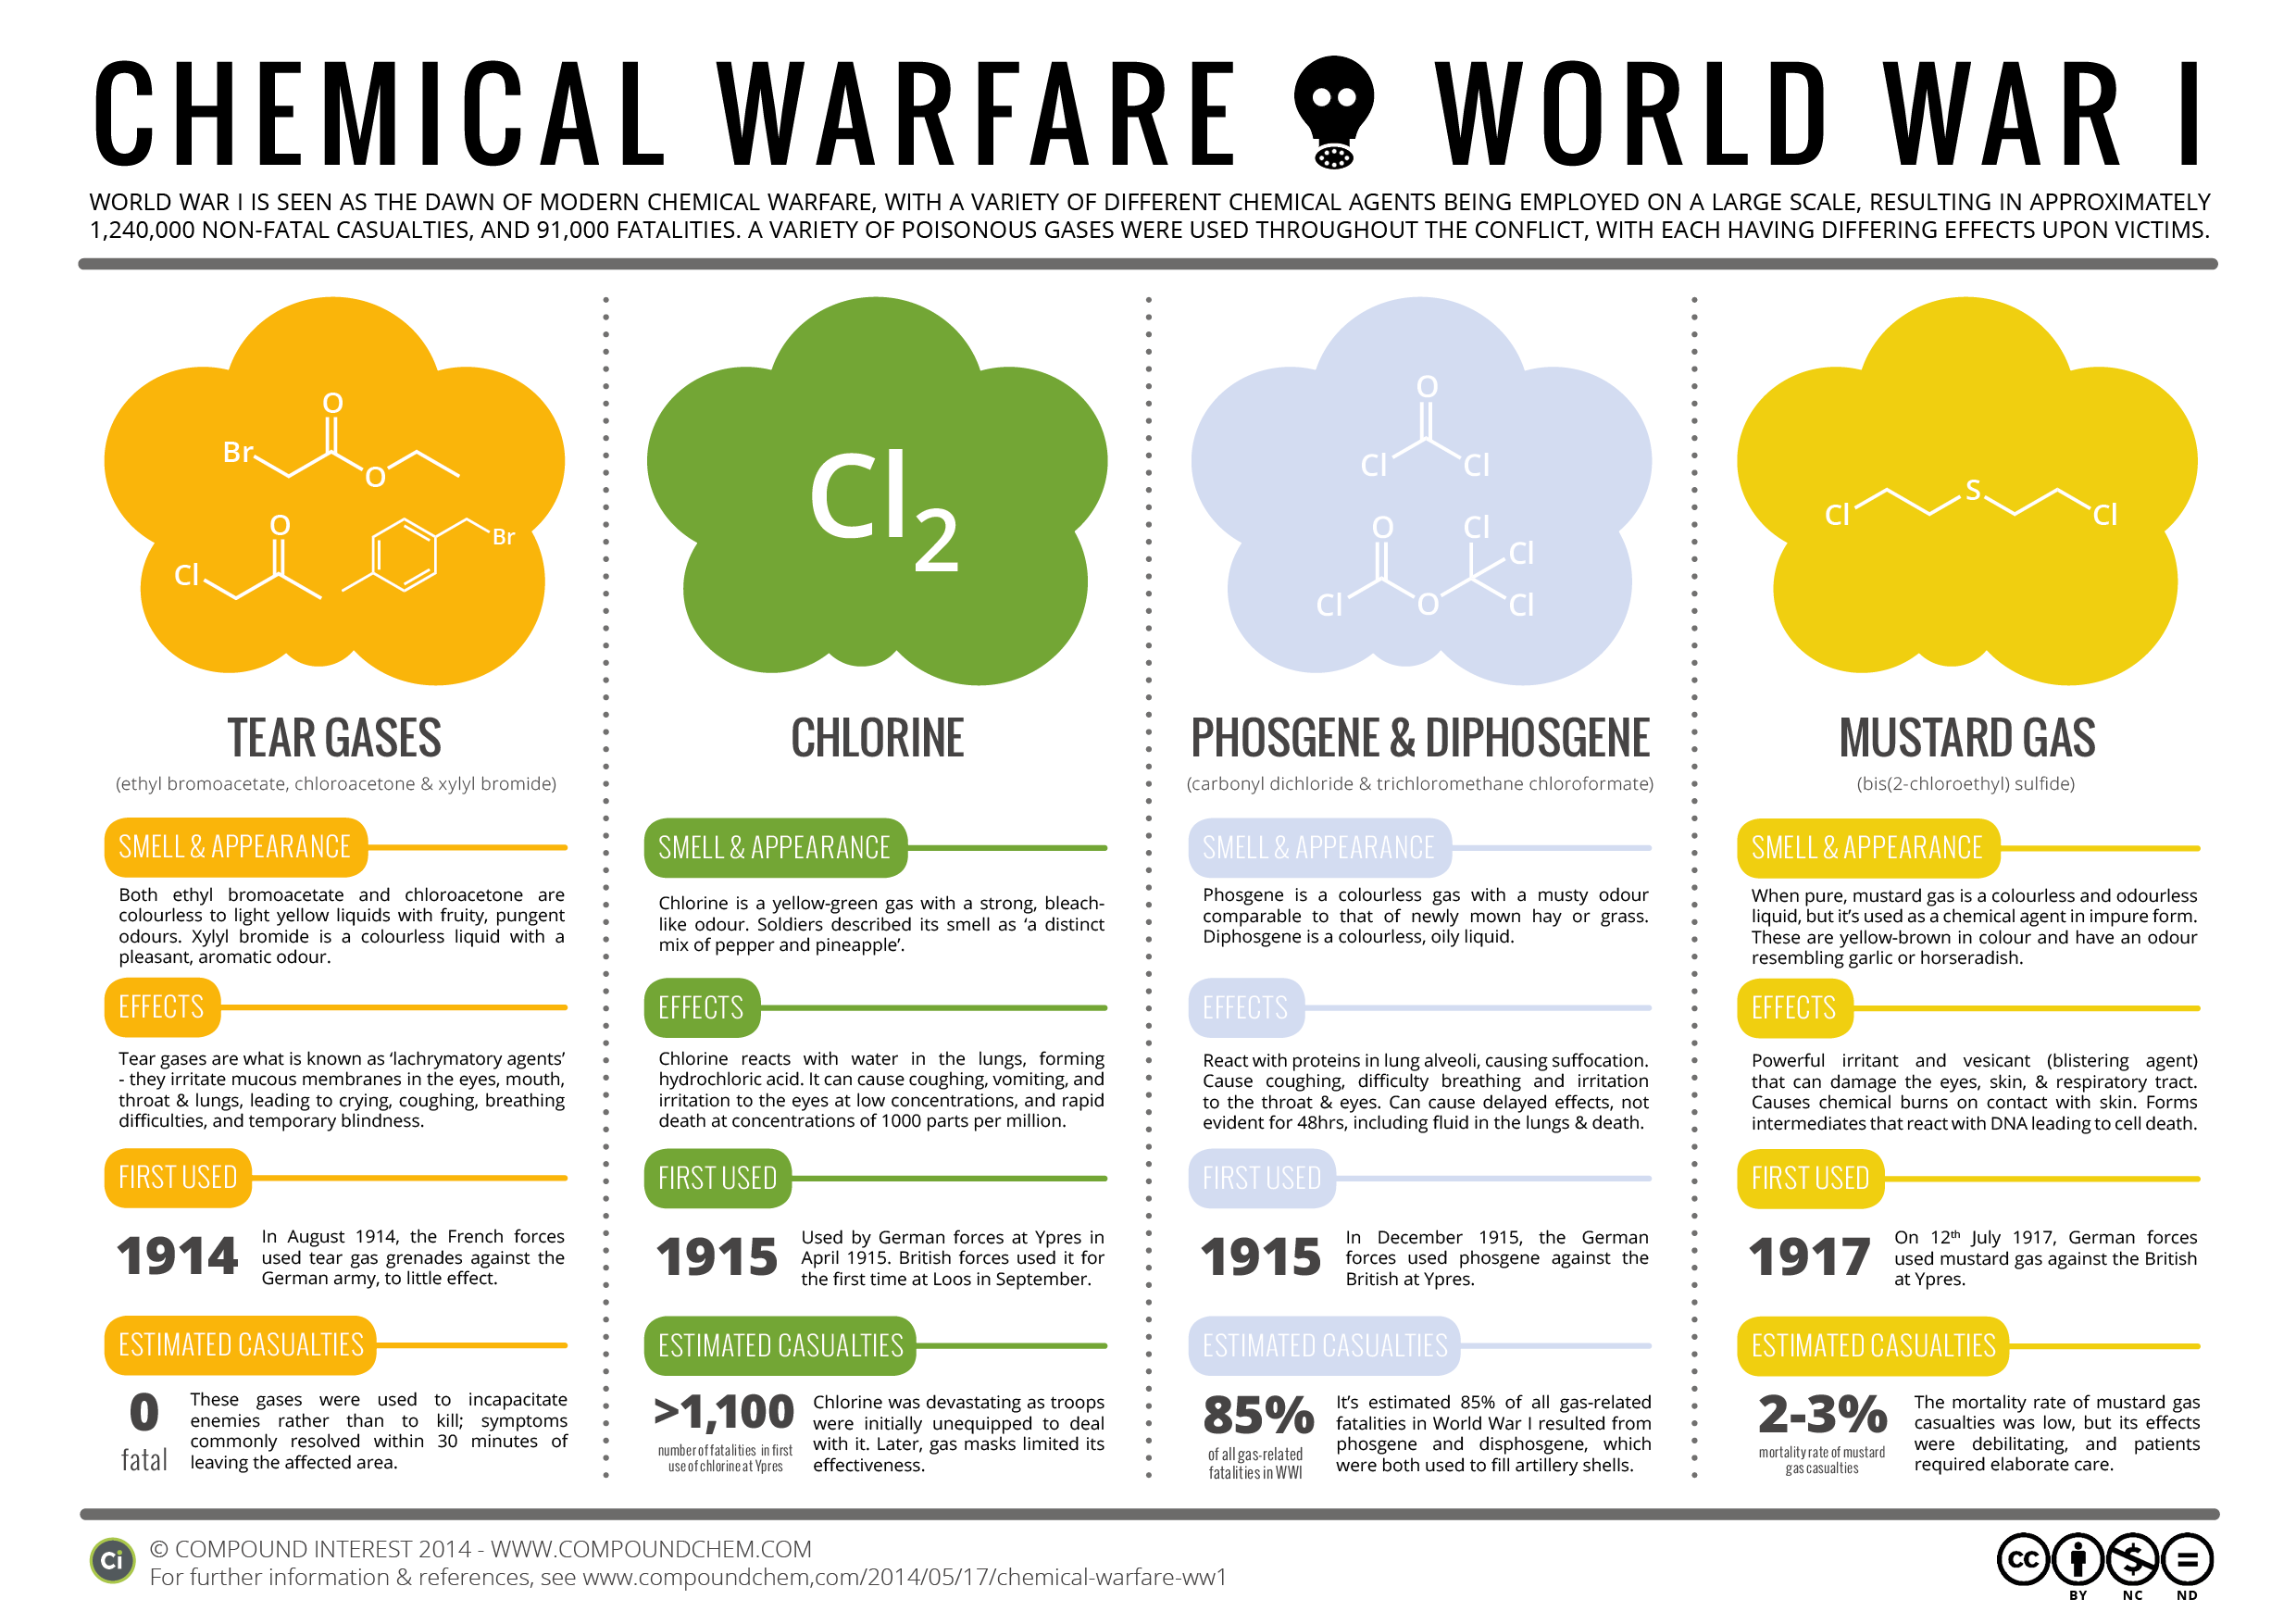 Chemical Warfare Poison Gases In World War 1 Compound Interest